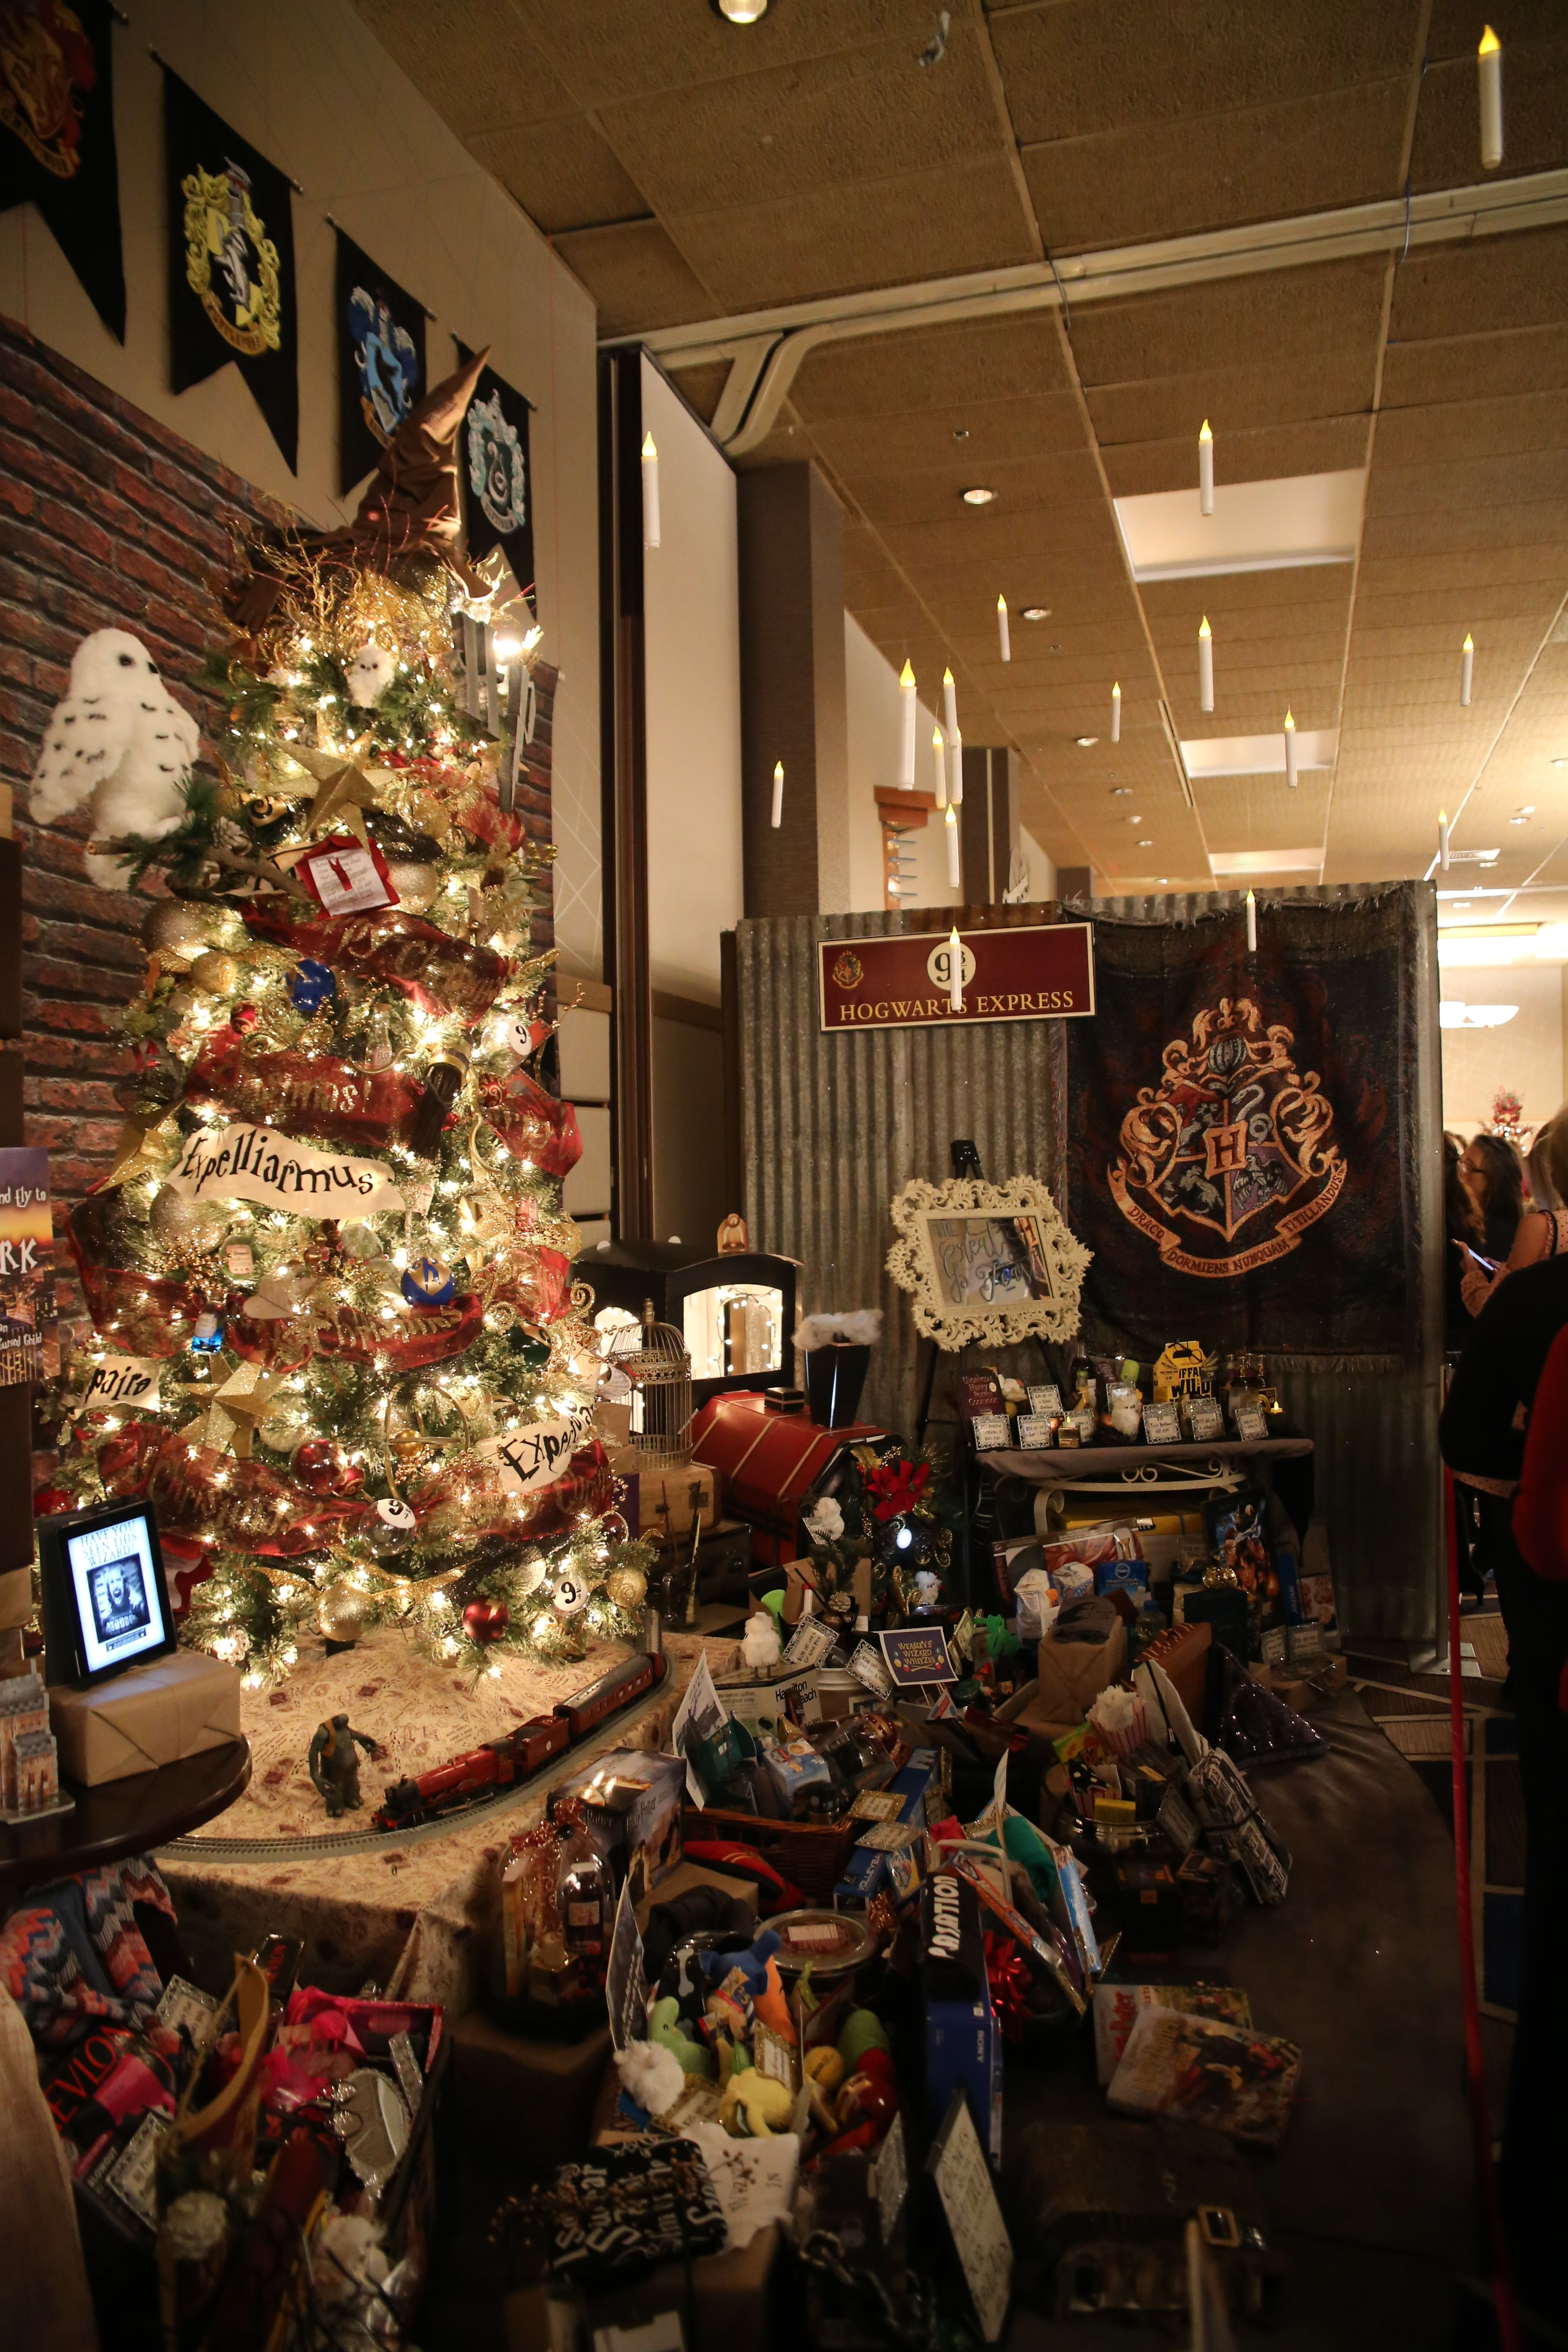 Harry Potter Christmas Display 2017 Festival Of Trees Coeur D Alene Note The Floating Candles Christmas Display Floating Candles Harry Potter Christmas